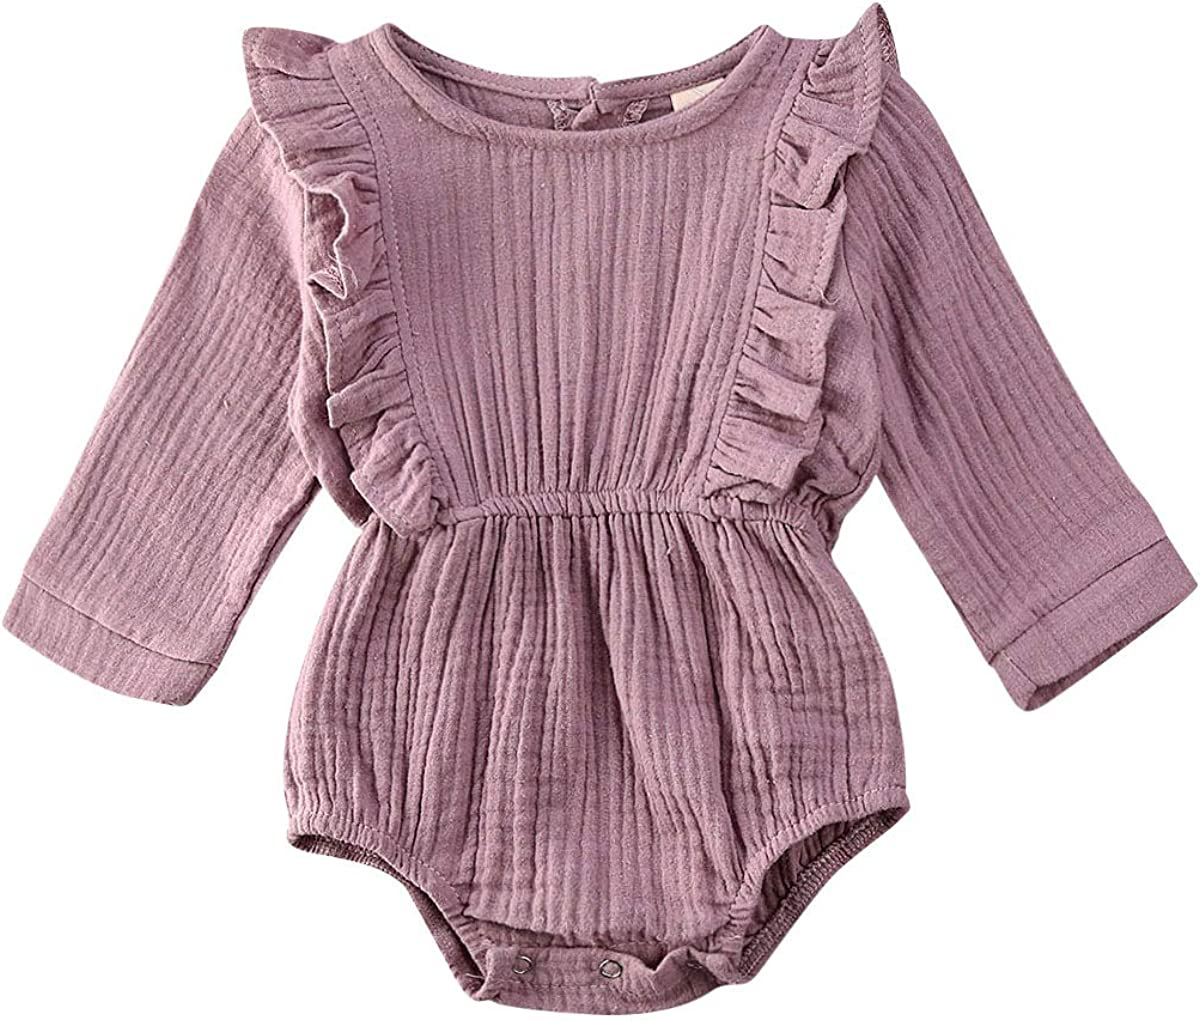 TNGXXWL Newborn Baby Girl Cotton Ruffled Romper Top Long Sleeve Solid Color Jumpsuit Outfit Clothes